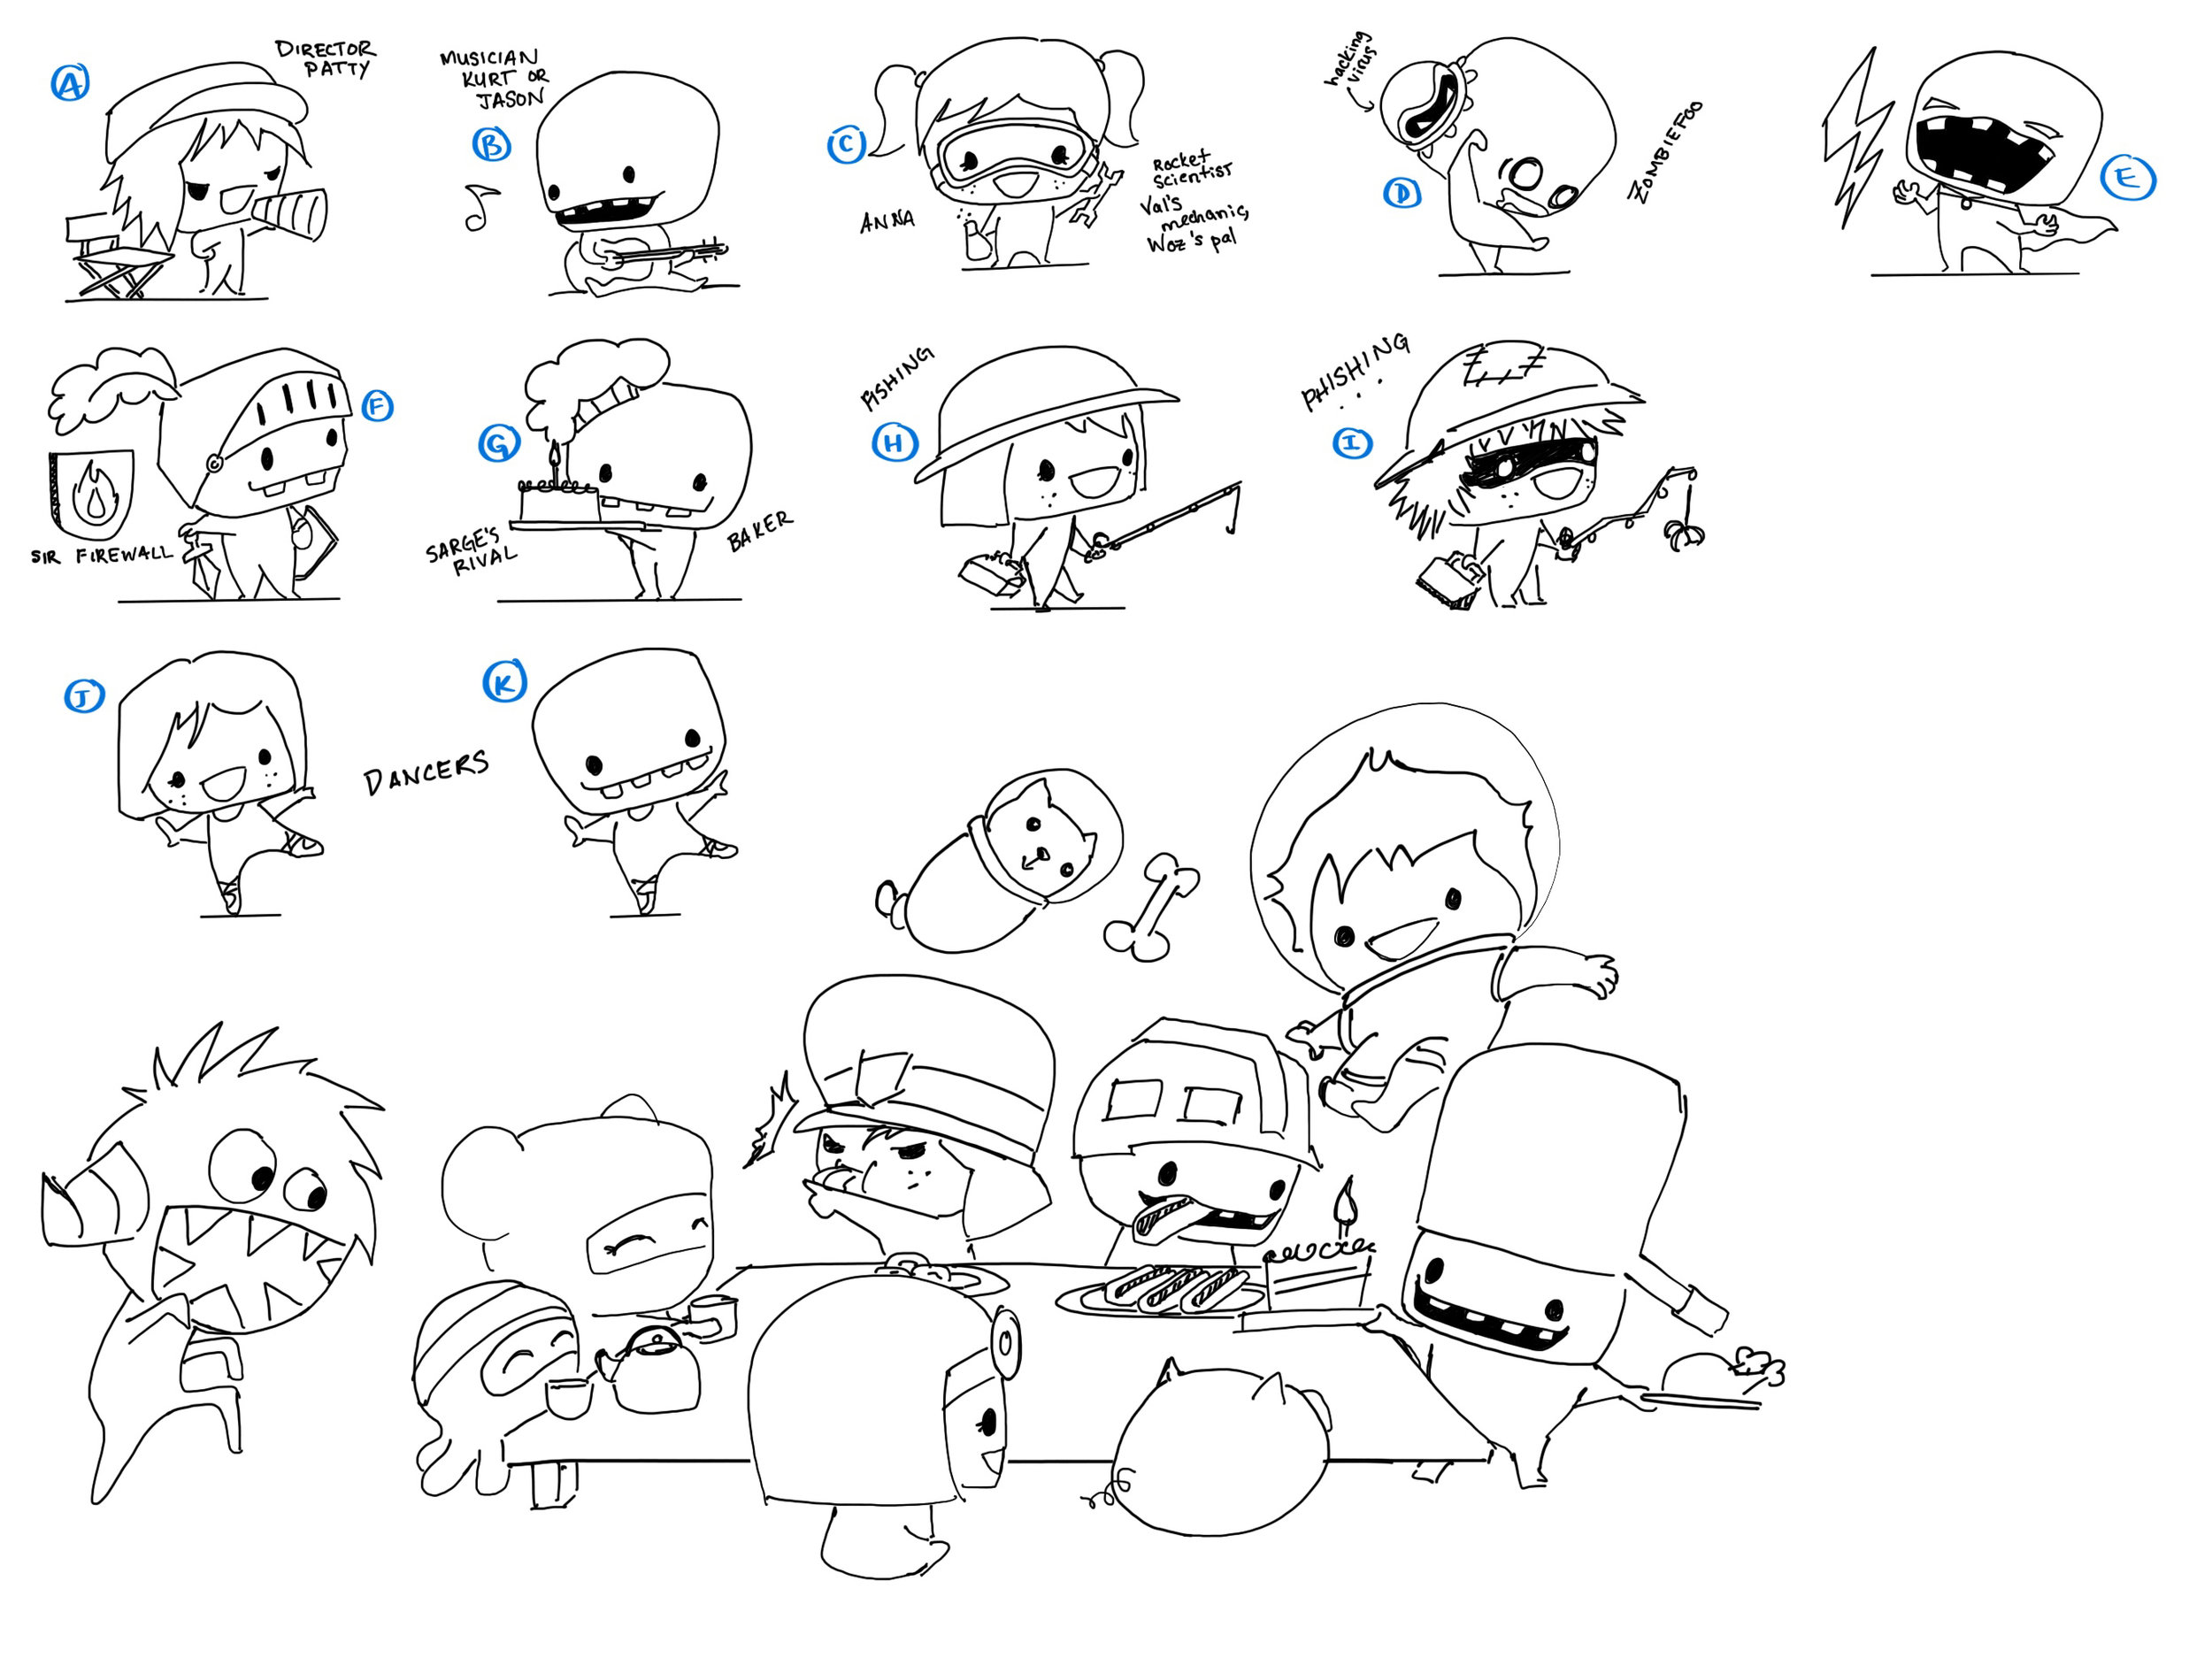 More character looks and concepts for Foos